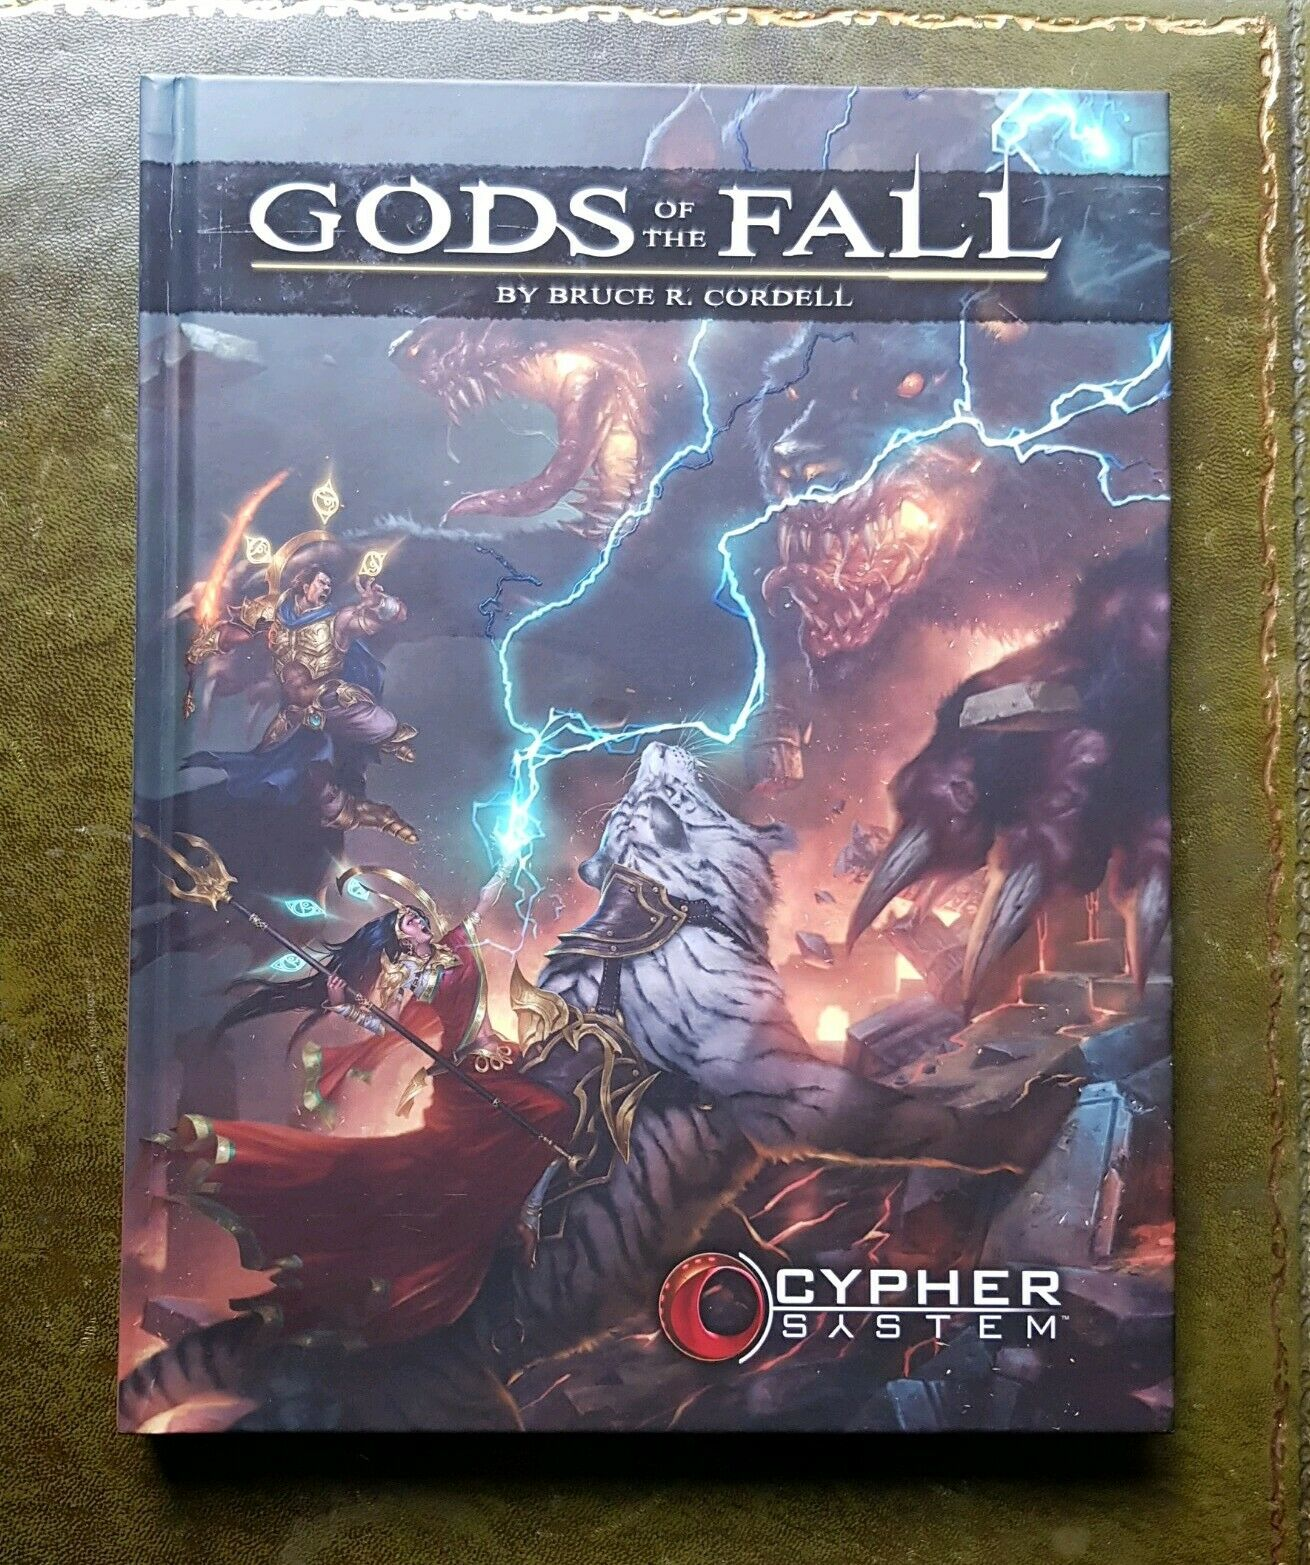 GODS OF THE FALL - CYPHER RPG MONTE COOK ROLEPLAYING ROLEPLAY FANTASY NUMENERA